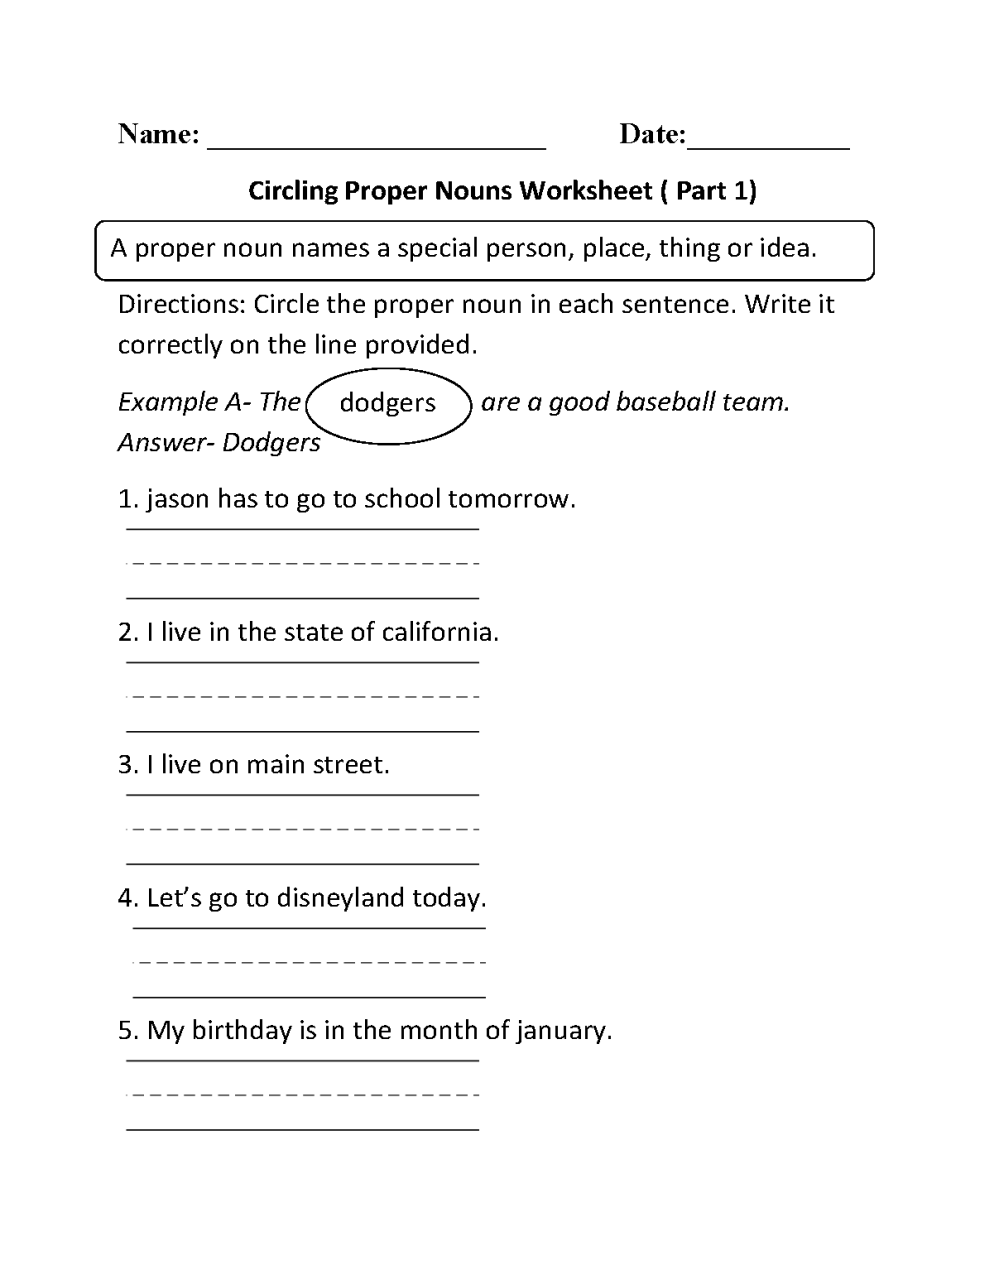 medium resolution of Proper and Common Nouns Worksheets   Circling Proper Nouns Worksheet Part 1